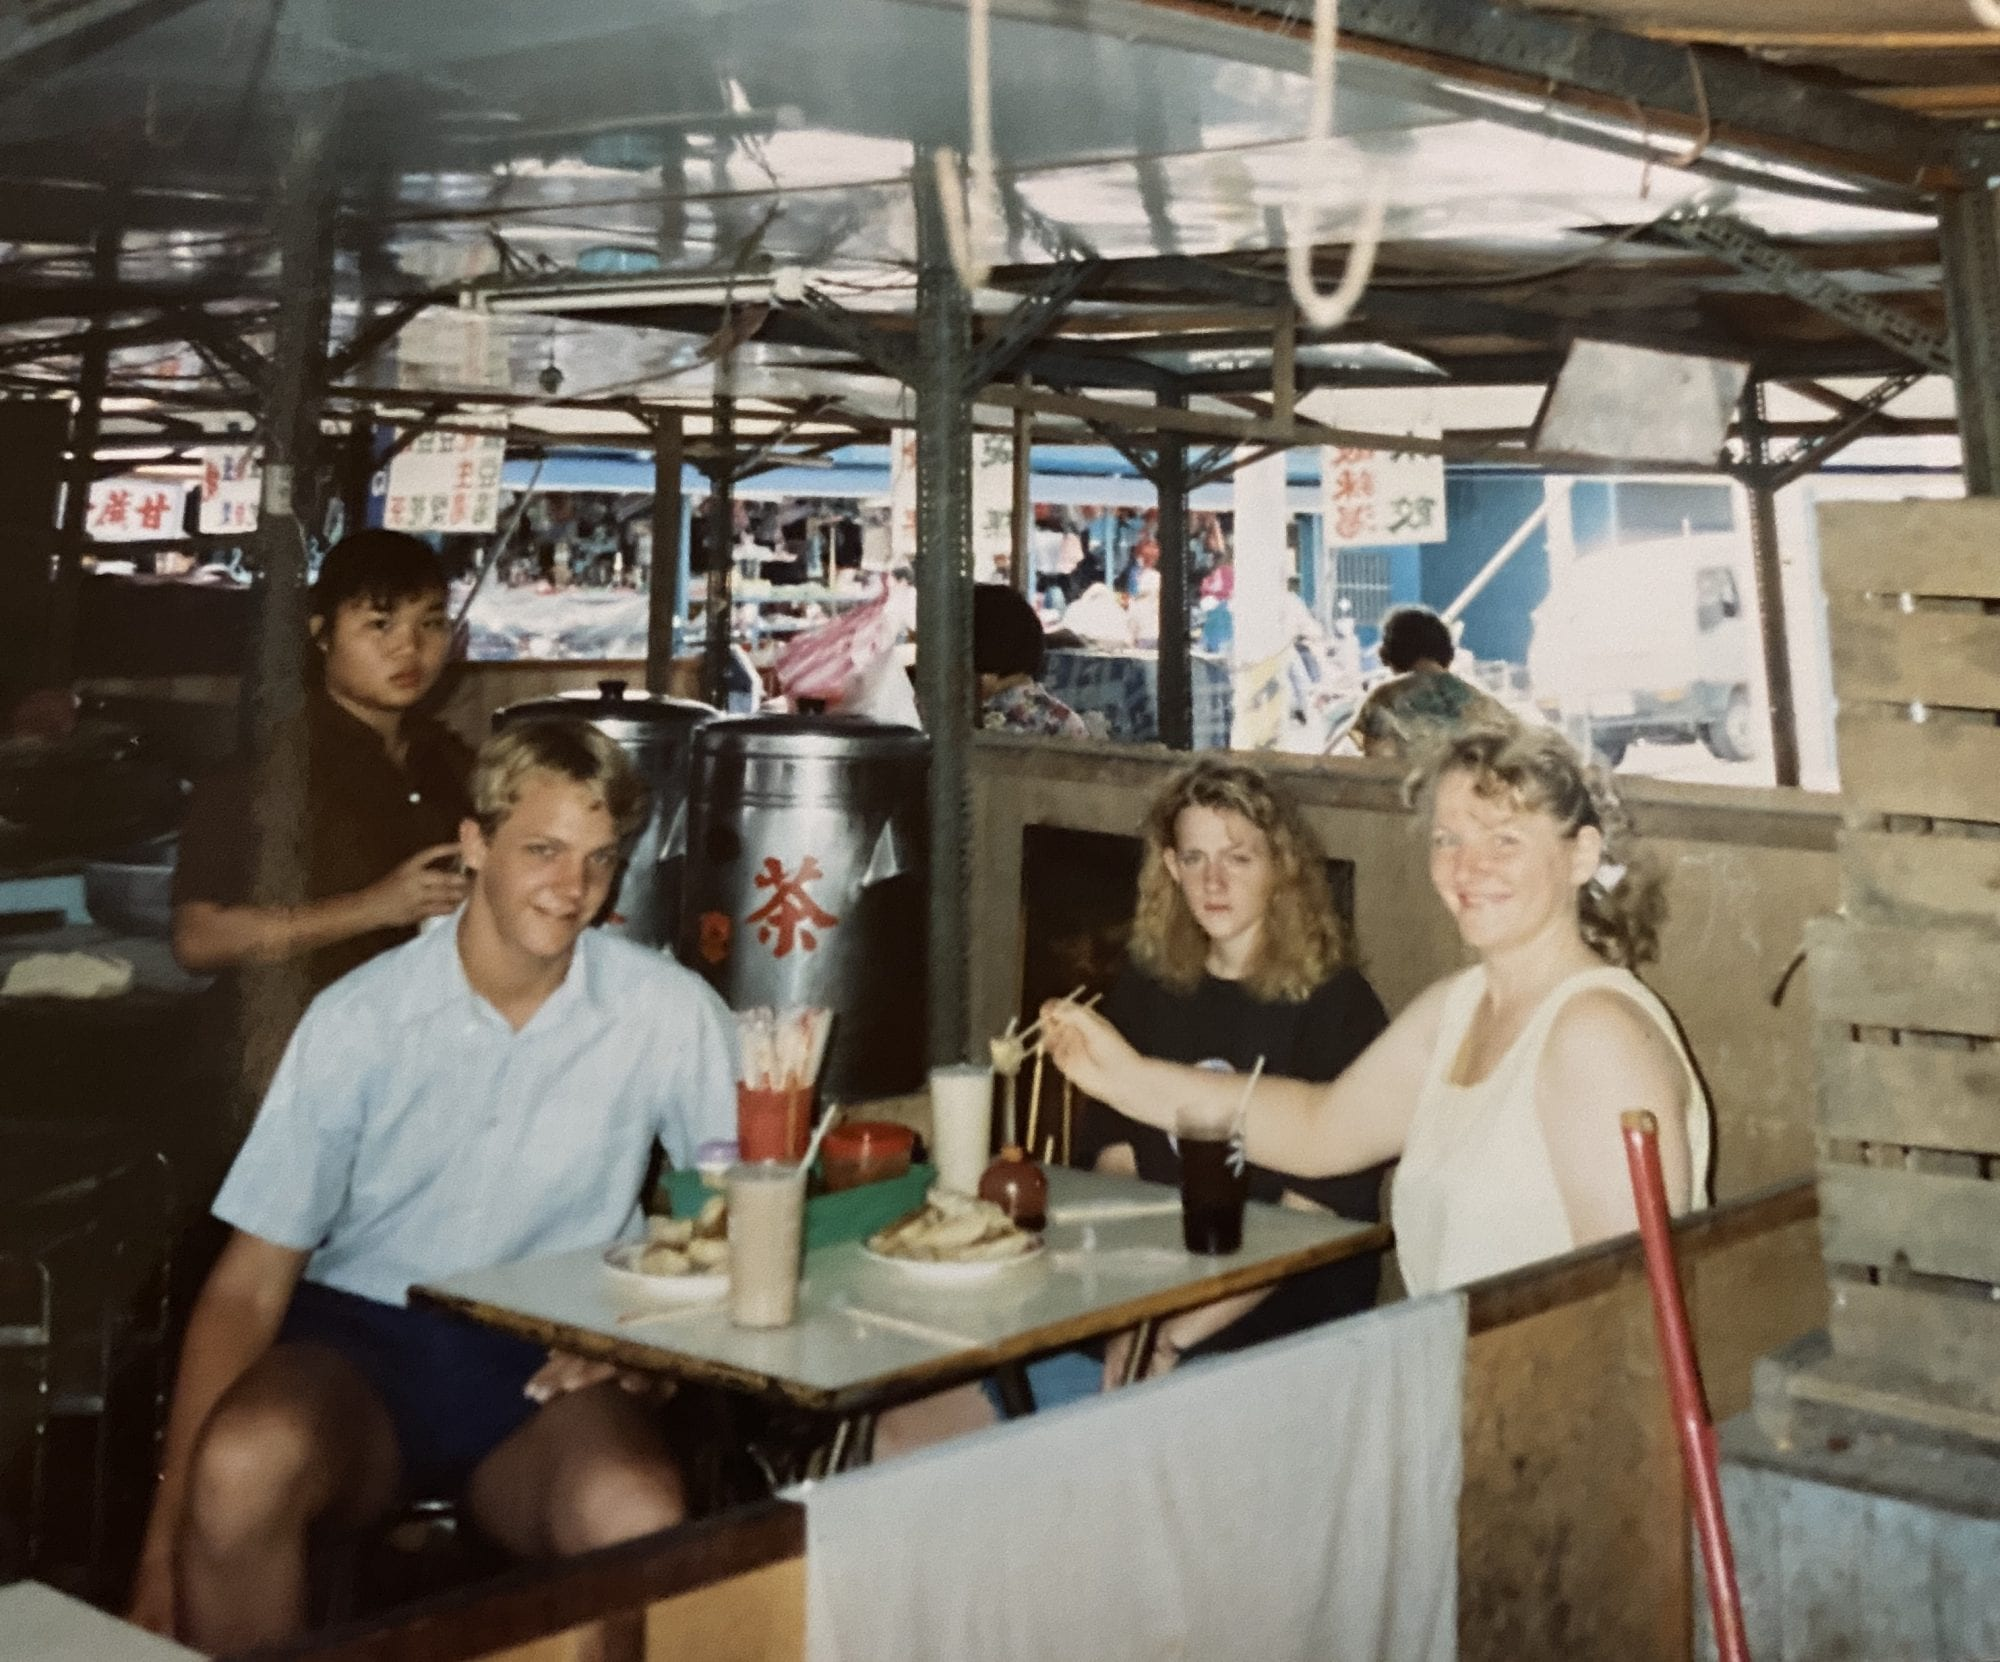 a young man with a white shirt is smiling, a girl with a black shirt looks like she is scowling, and a woman with a light shirt on is smiling brightly. there are plates of dumplings in front of them, and glasses of soybean milk. a woman in the back by the tea machine is looking on. 1990